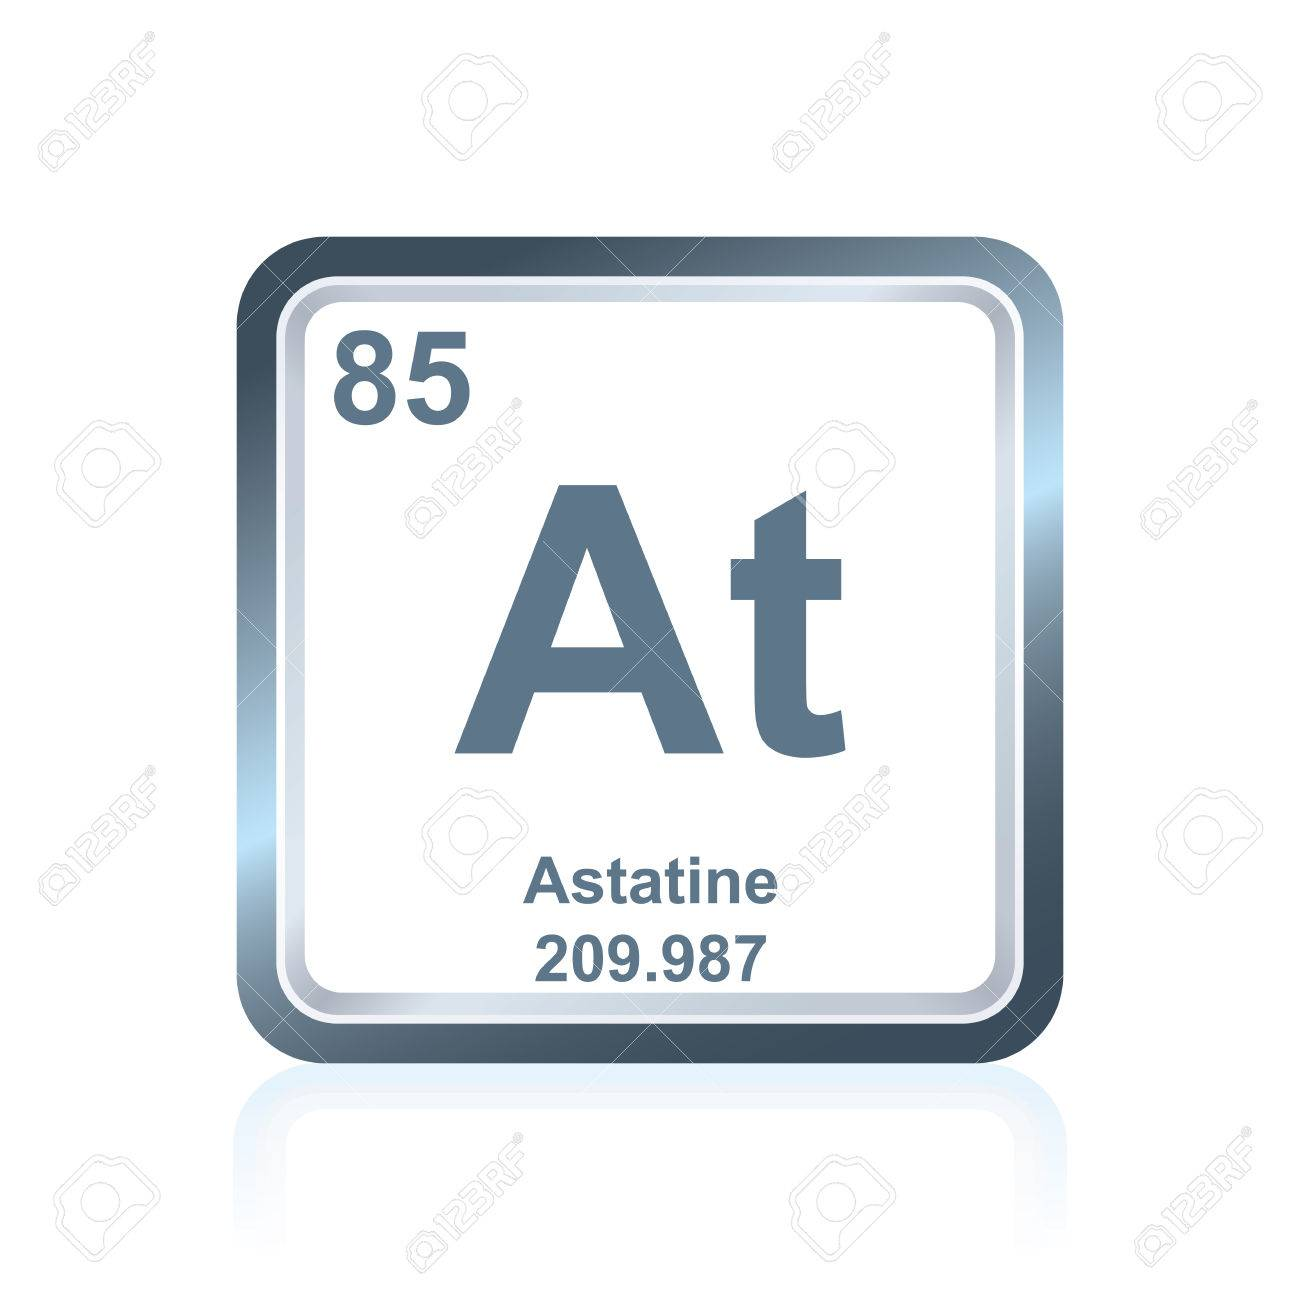 Symbol of chemical element astatine as seen on the periodic table symbol of chemical element astatine as seen on the periodic table of the elements including urtaz Image collections